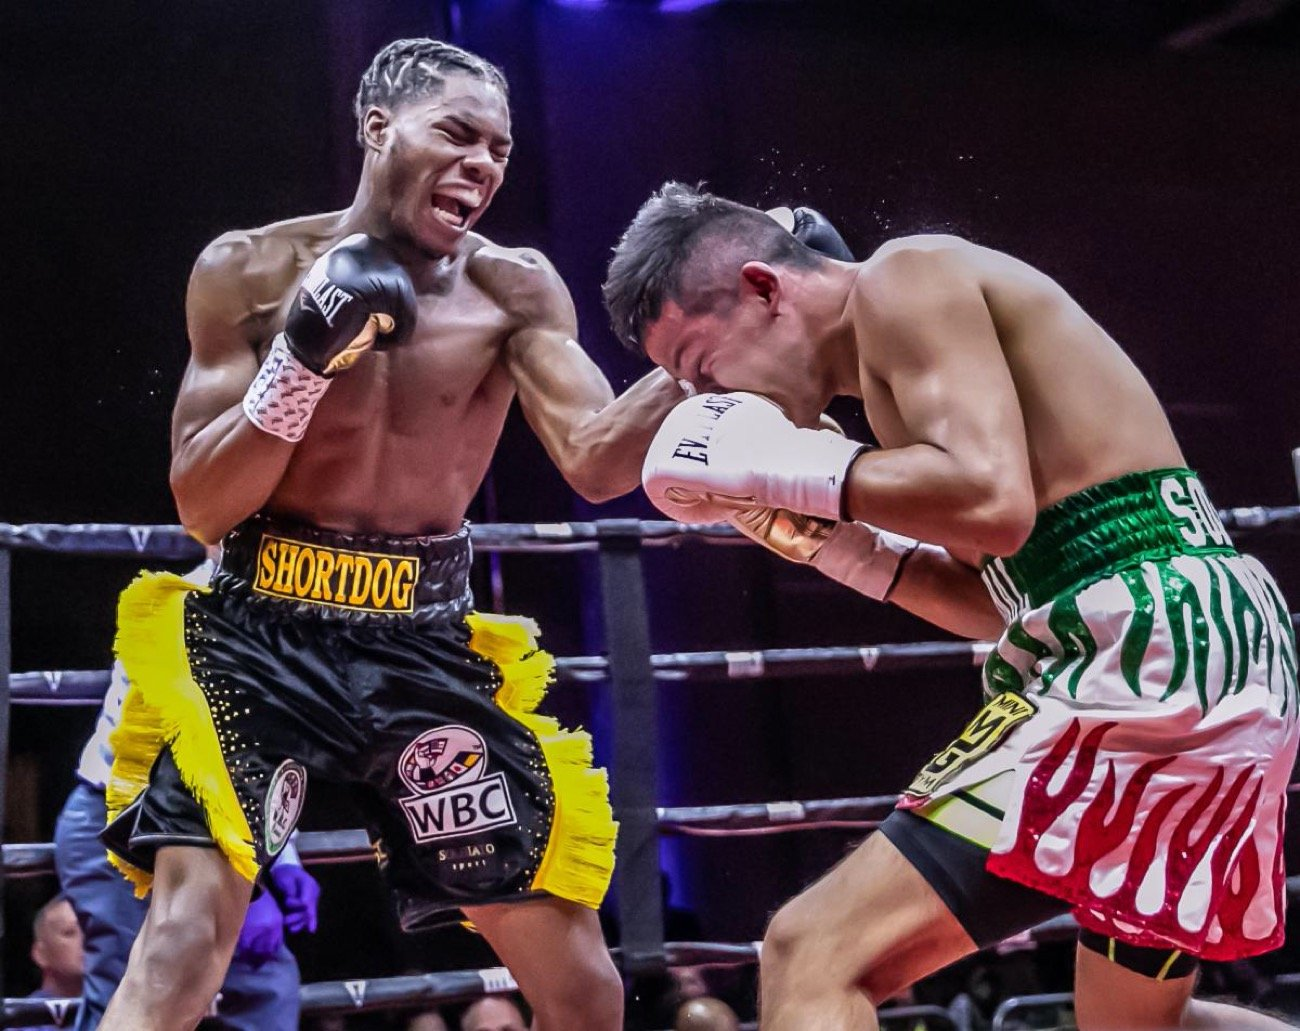 """Jordan White - When the world of boxing resumes, super featherweight prospect Jordan """"Shortdog"""" White will be primed to ascend into elite status in the 130-pound division."""